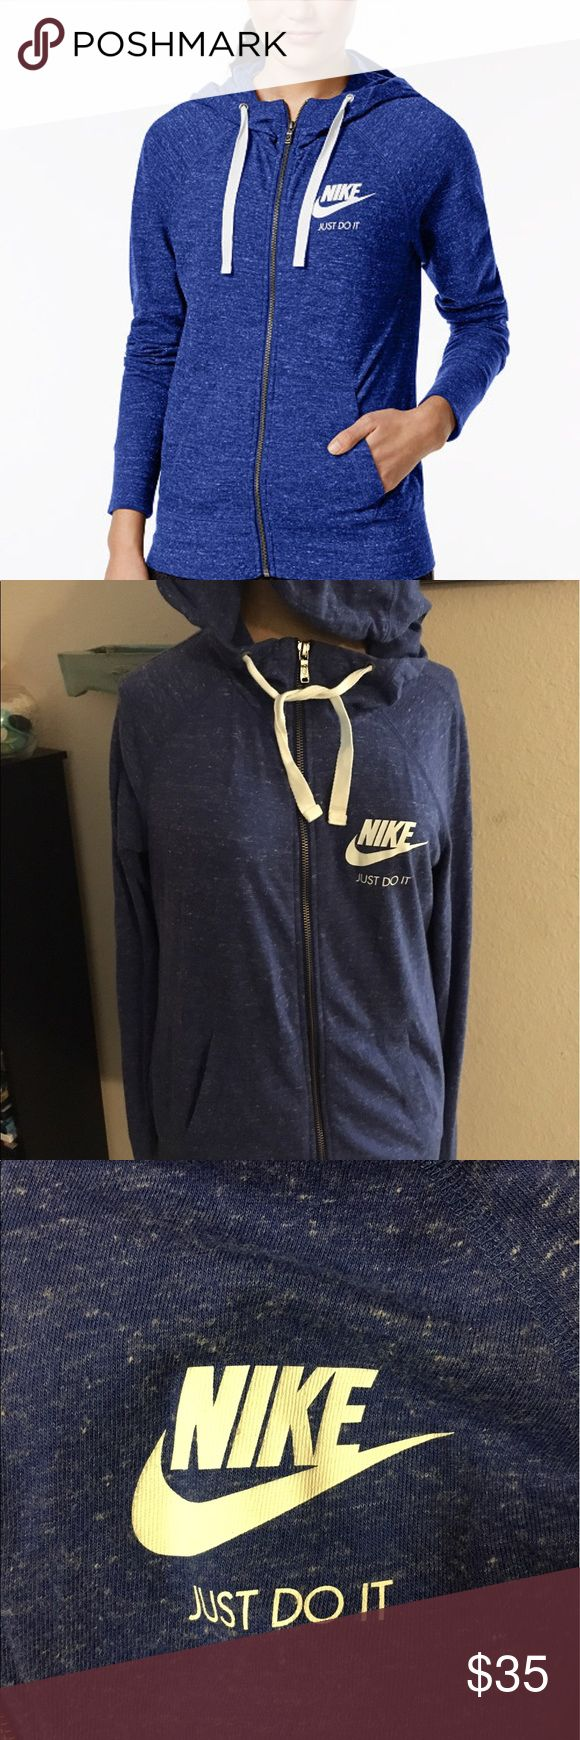 Like new! Women's Nike zip up All details in last pic. In excellent used condition, like new! Pet/smoke free home Nike Jackets & Coats